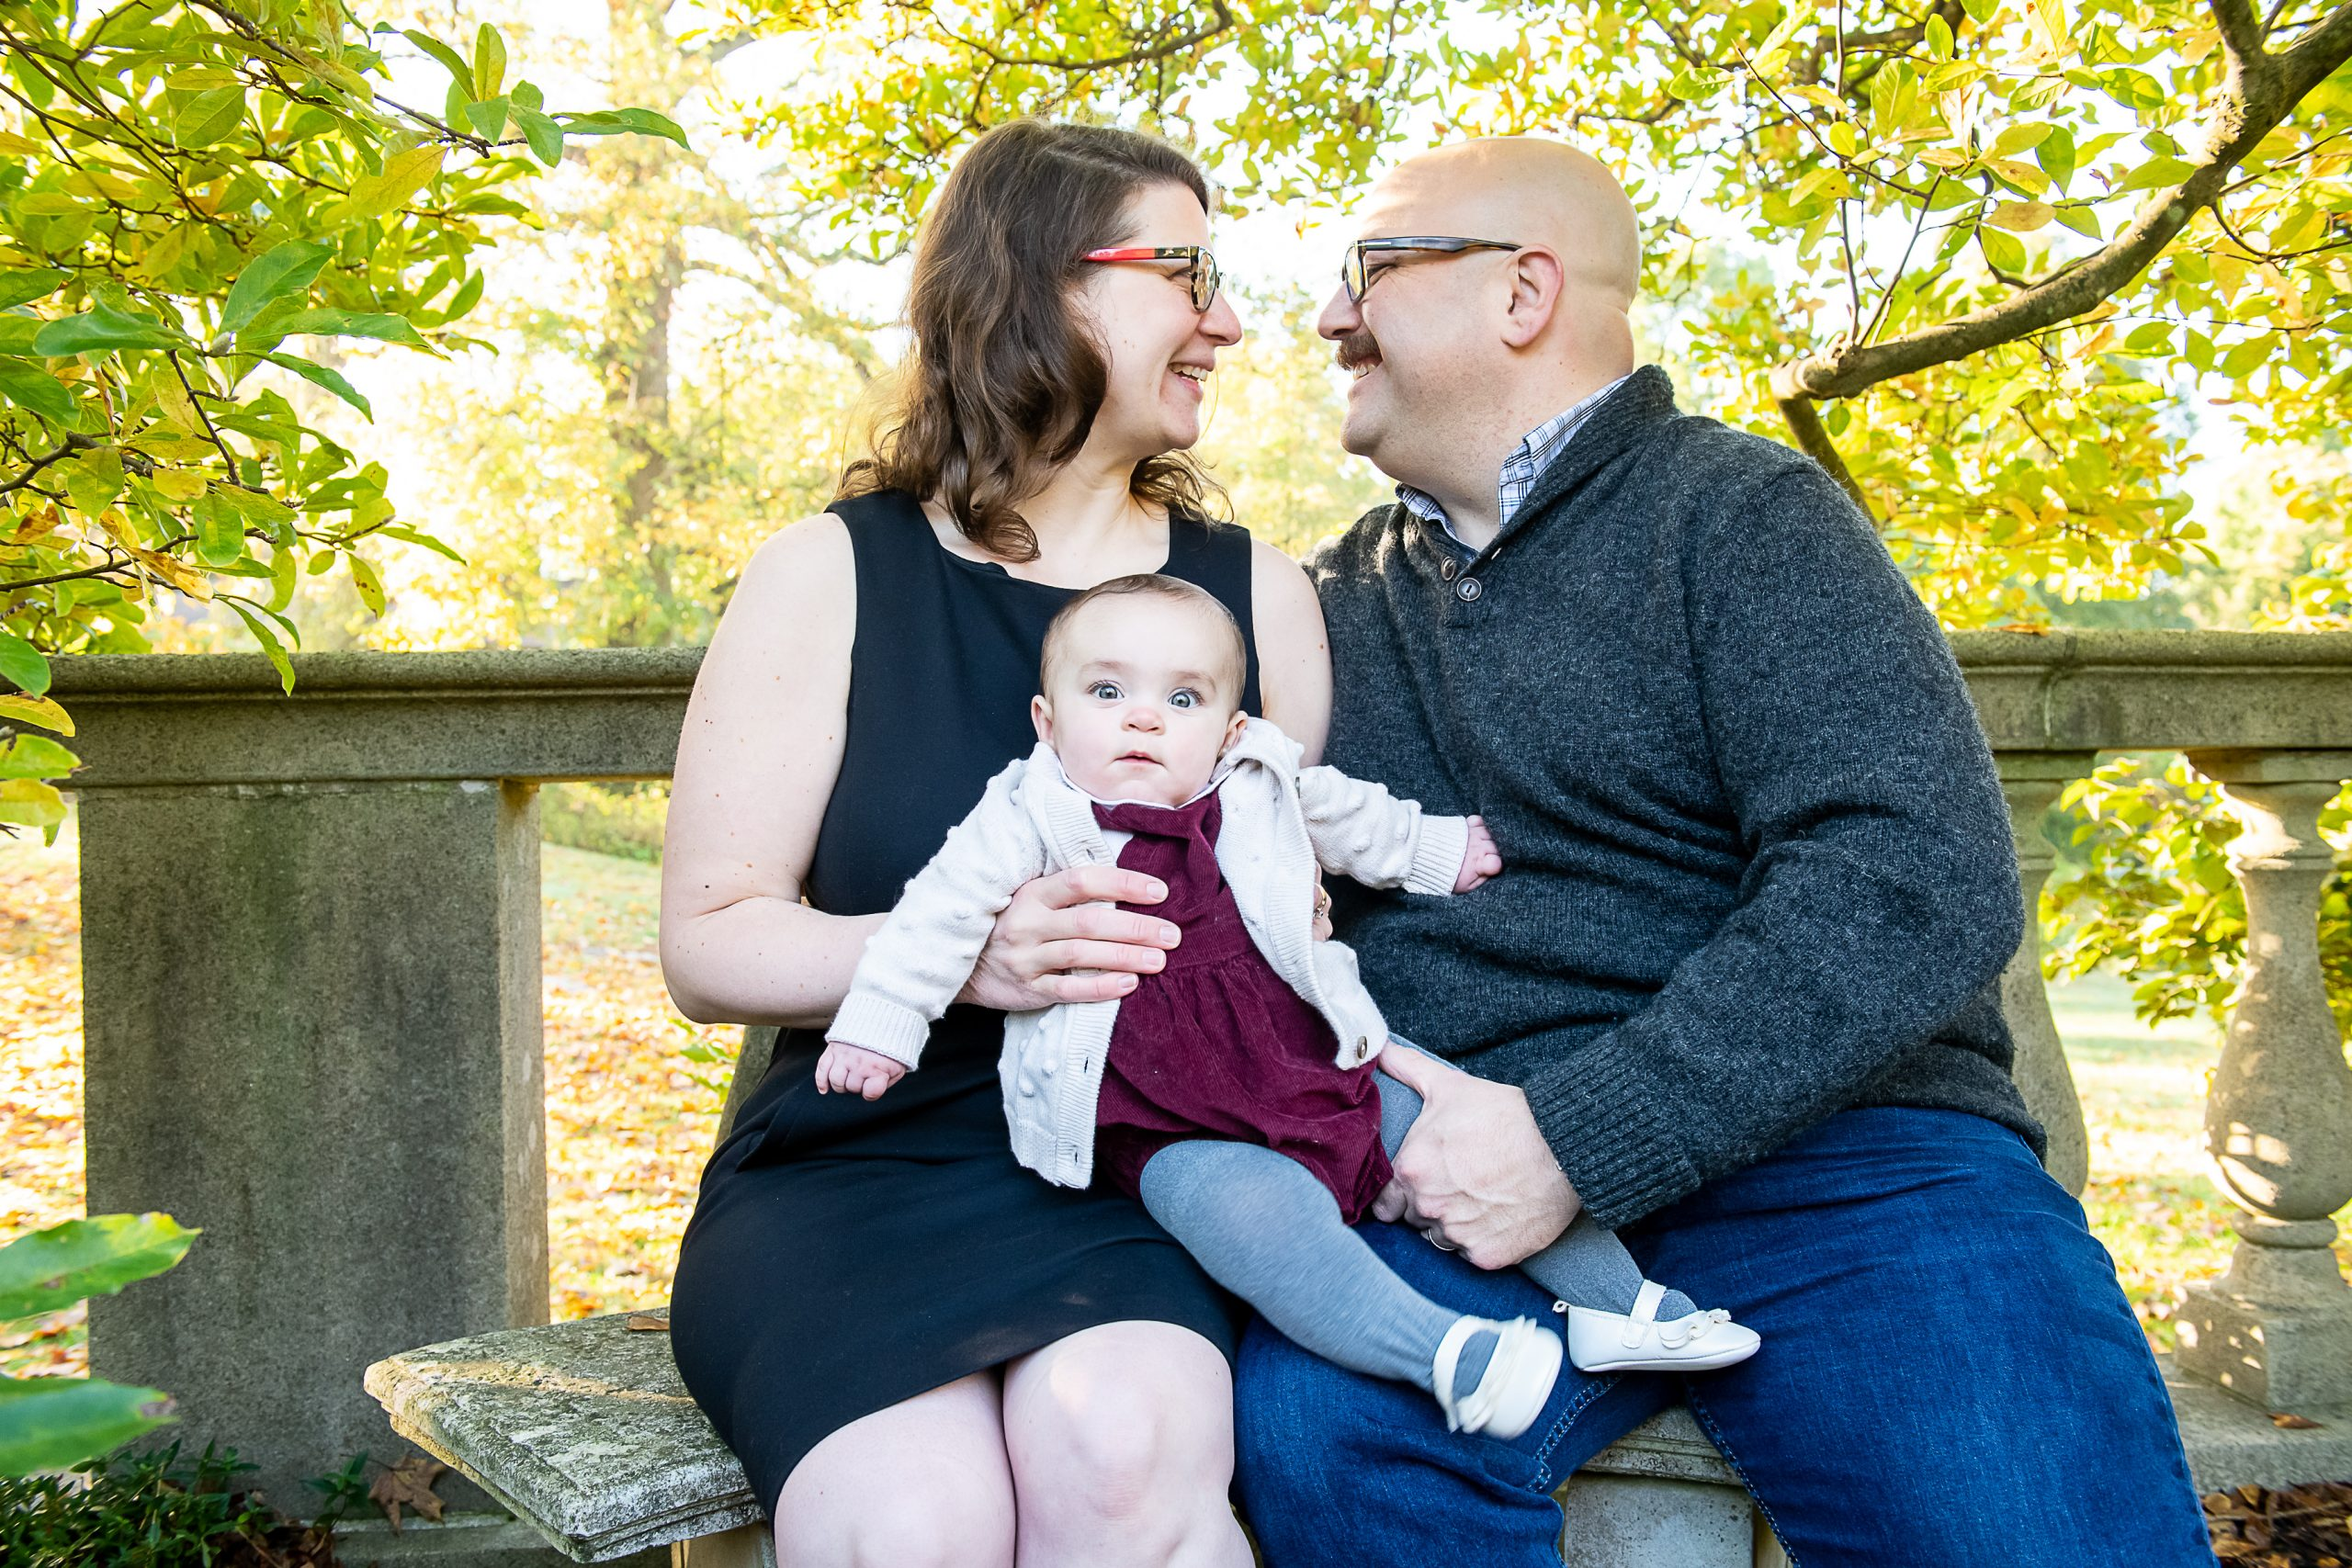 Family Portraits in Stamford, CT. Photography by Christopher Duggan